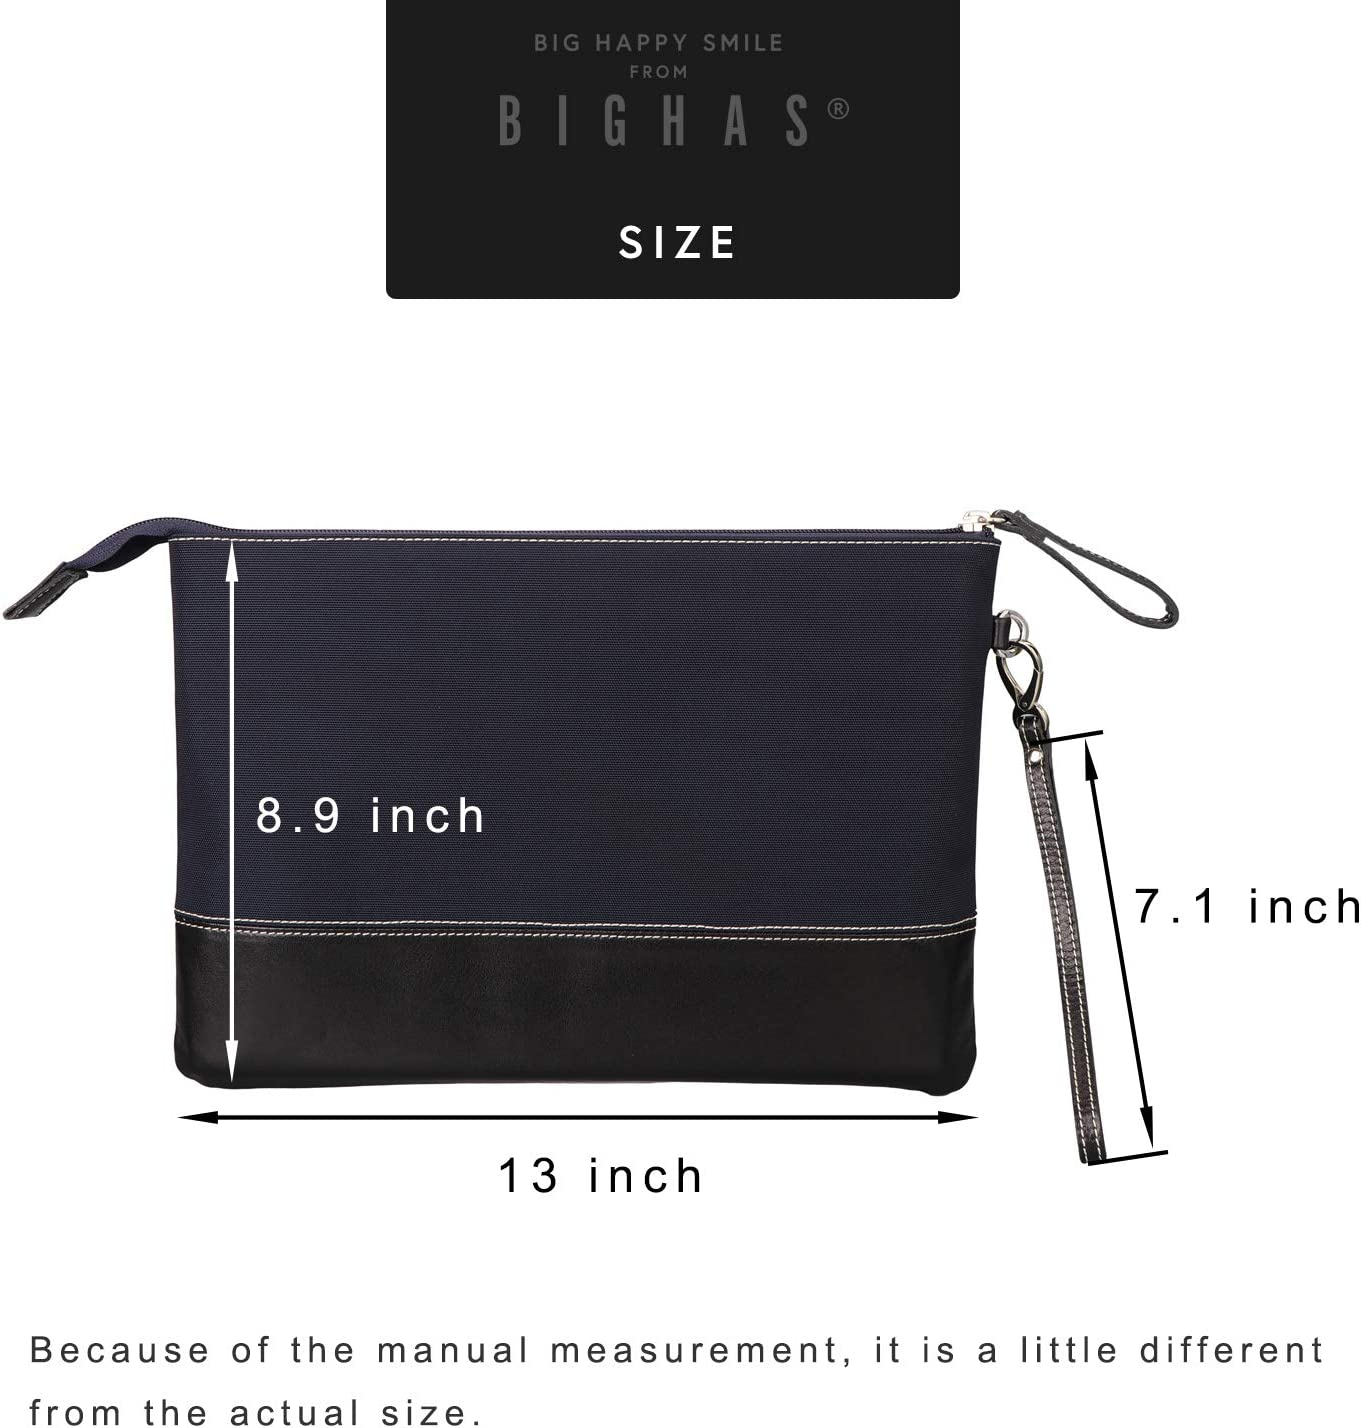 BIGHAS Mens Clutch Bag Handbag Briefcase US Letter Large Size Long Wrist Strap Nylon Genuine Leather Business Daily Commuting Zipper 2 Color Green+Brown